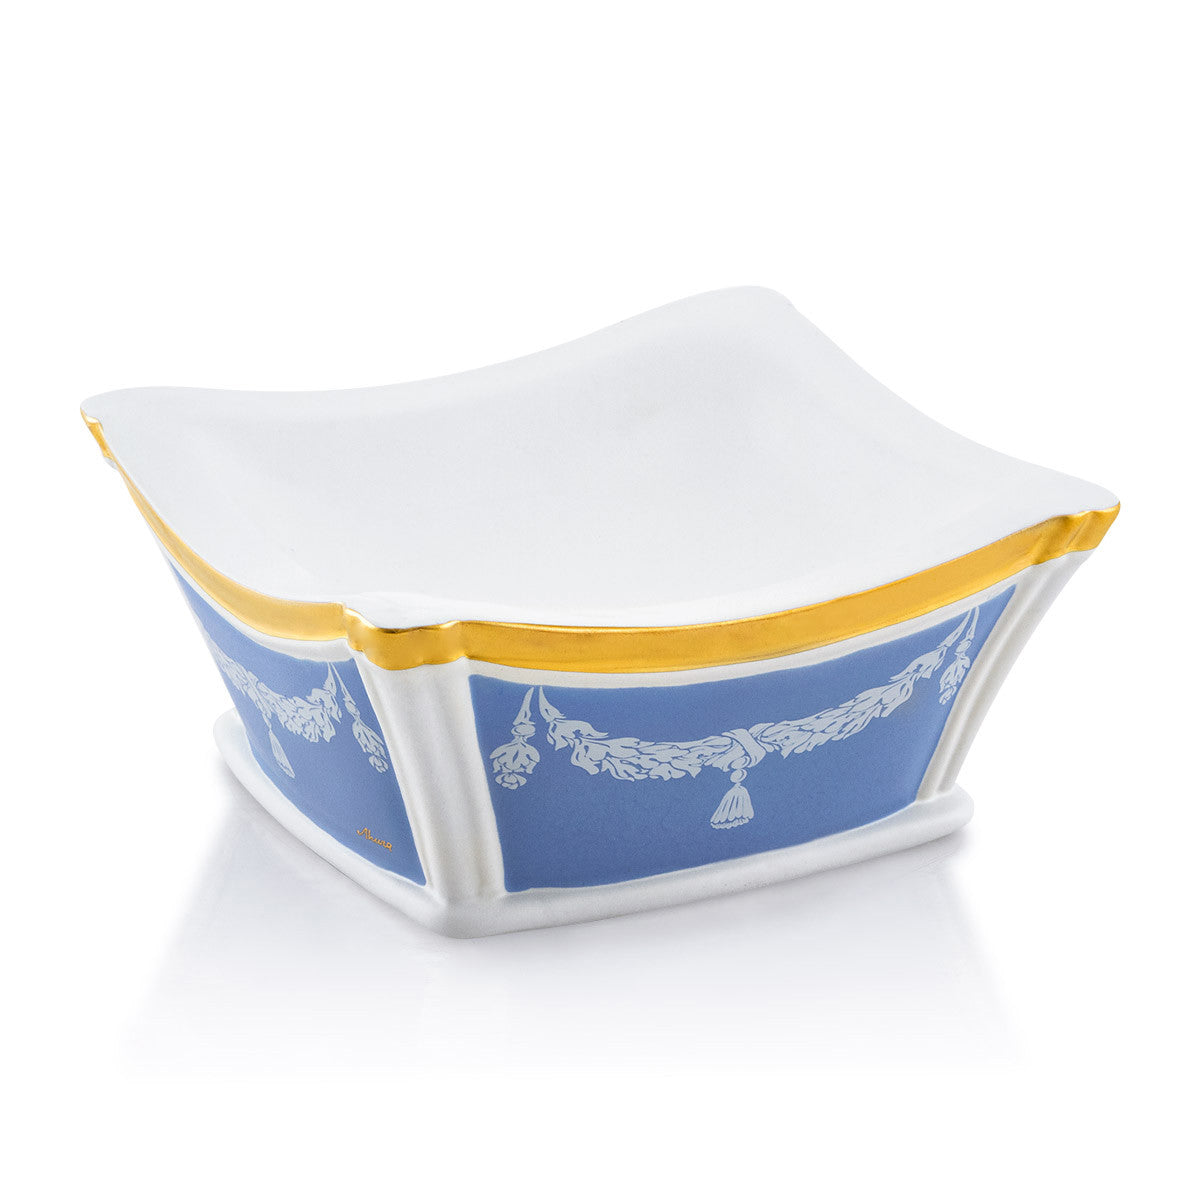 Ceramic square valet tray with white ornaments